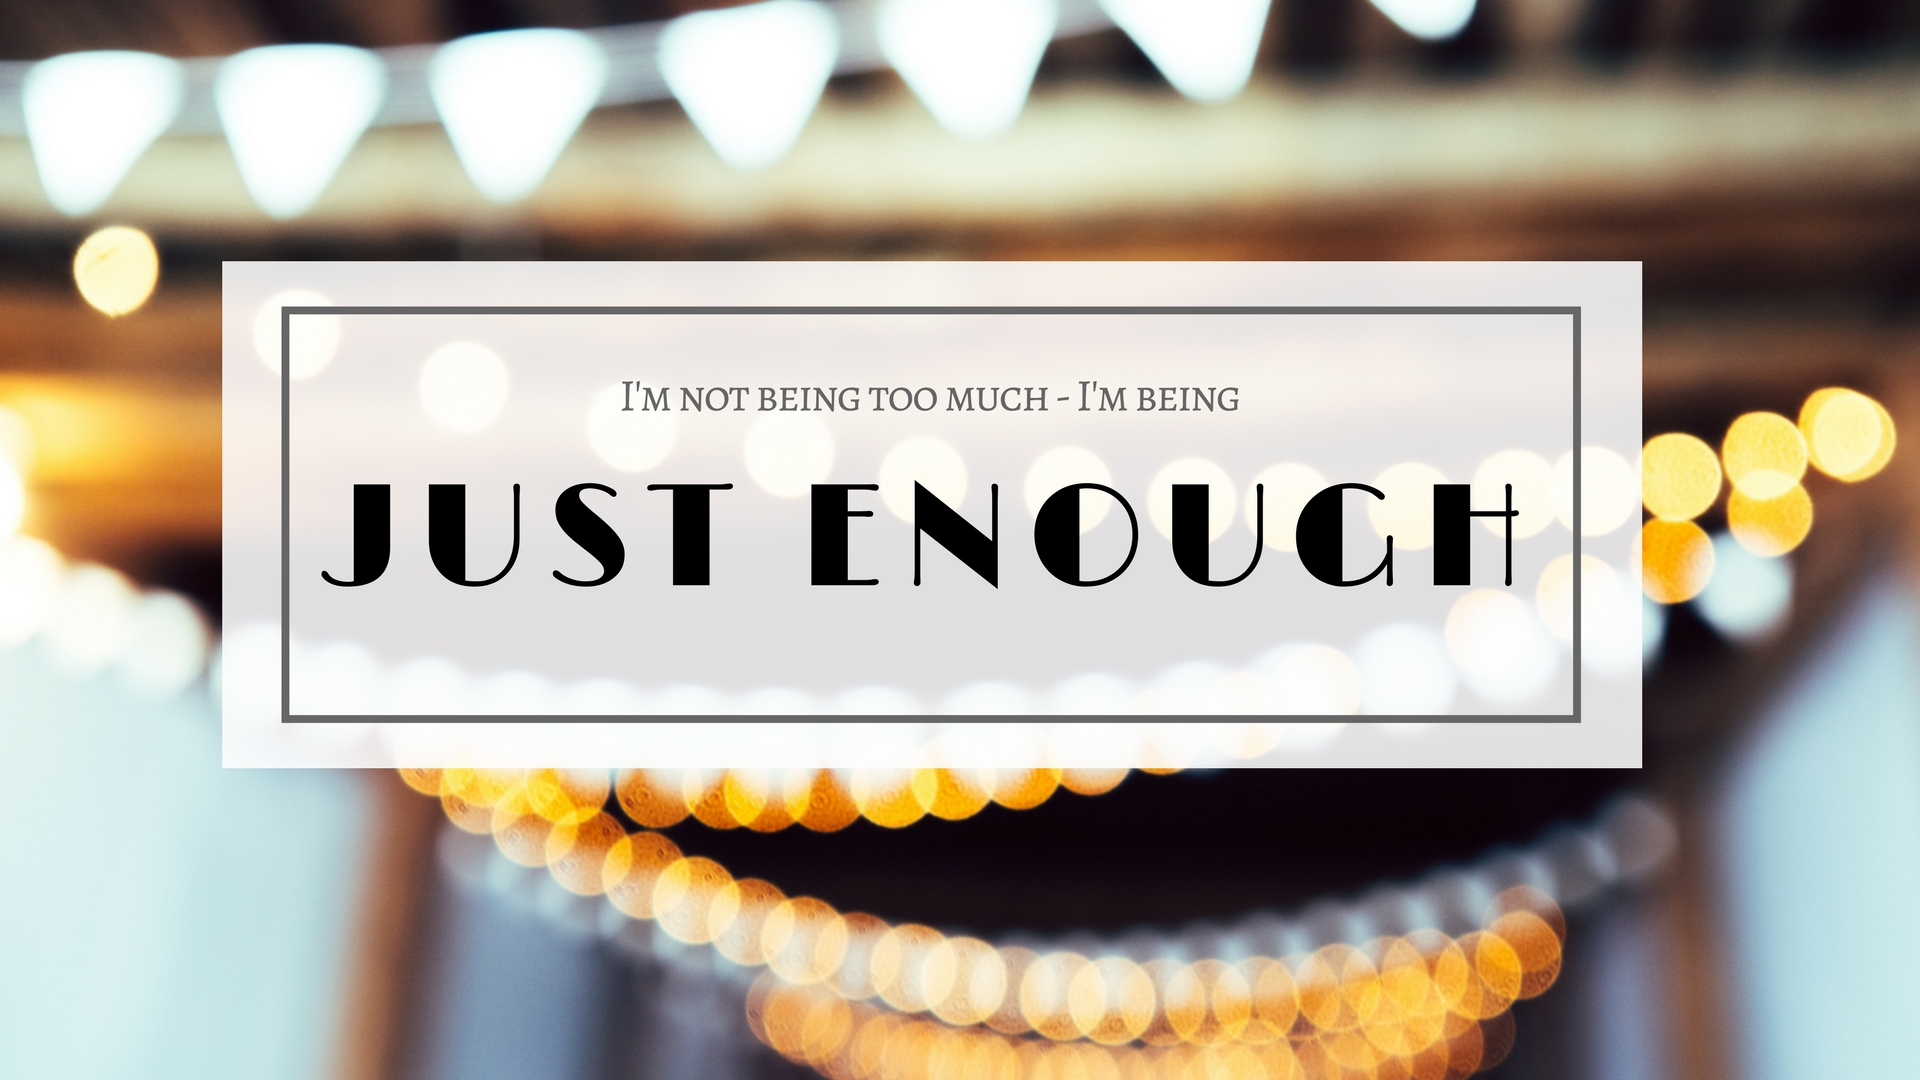 Just enough header